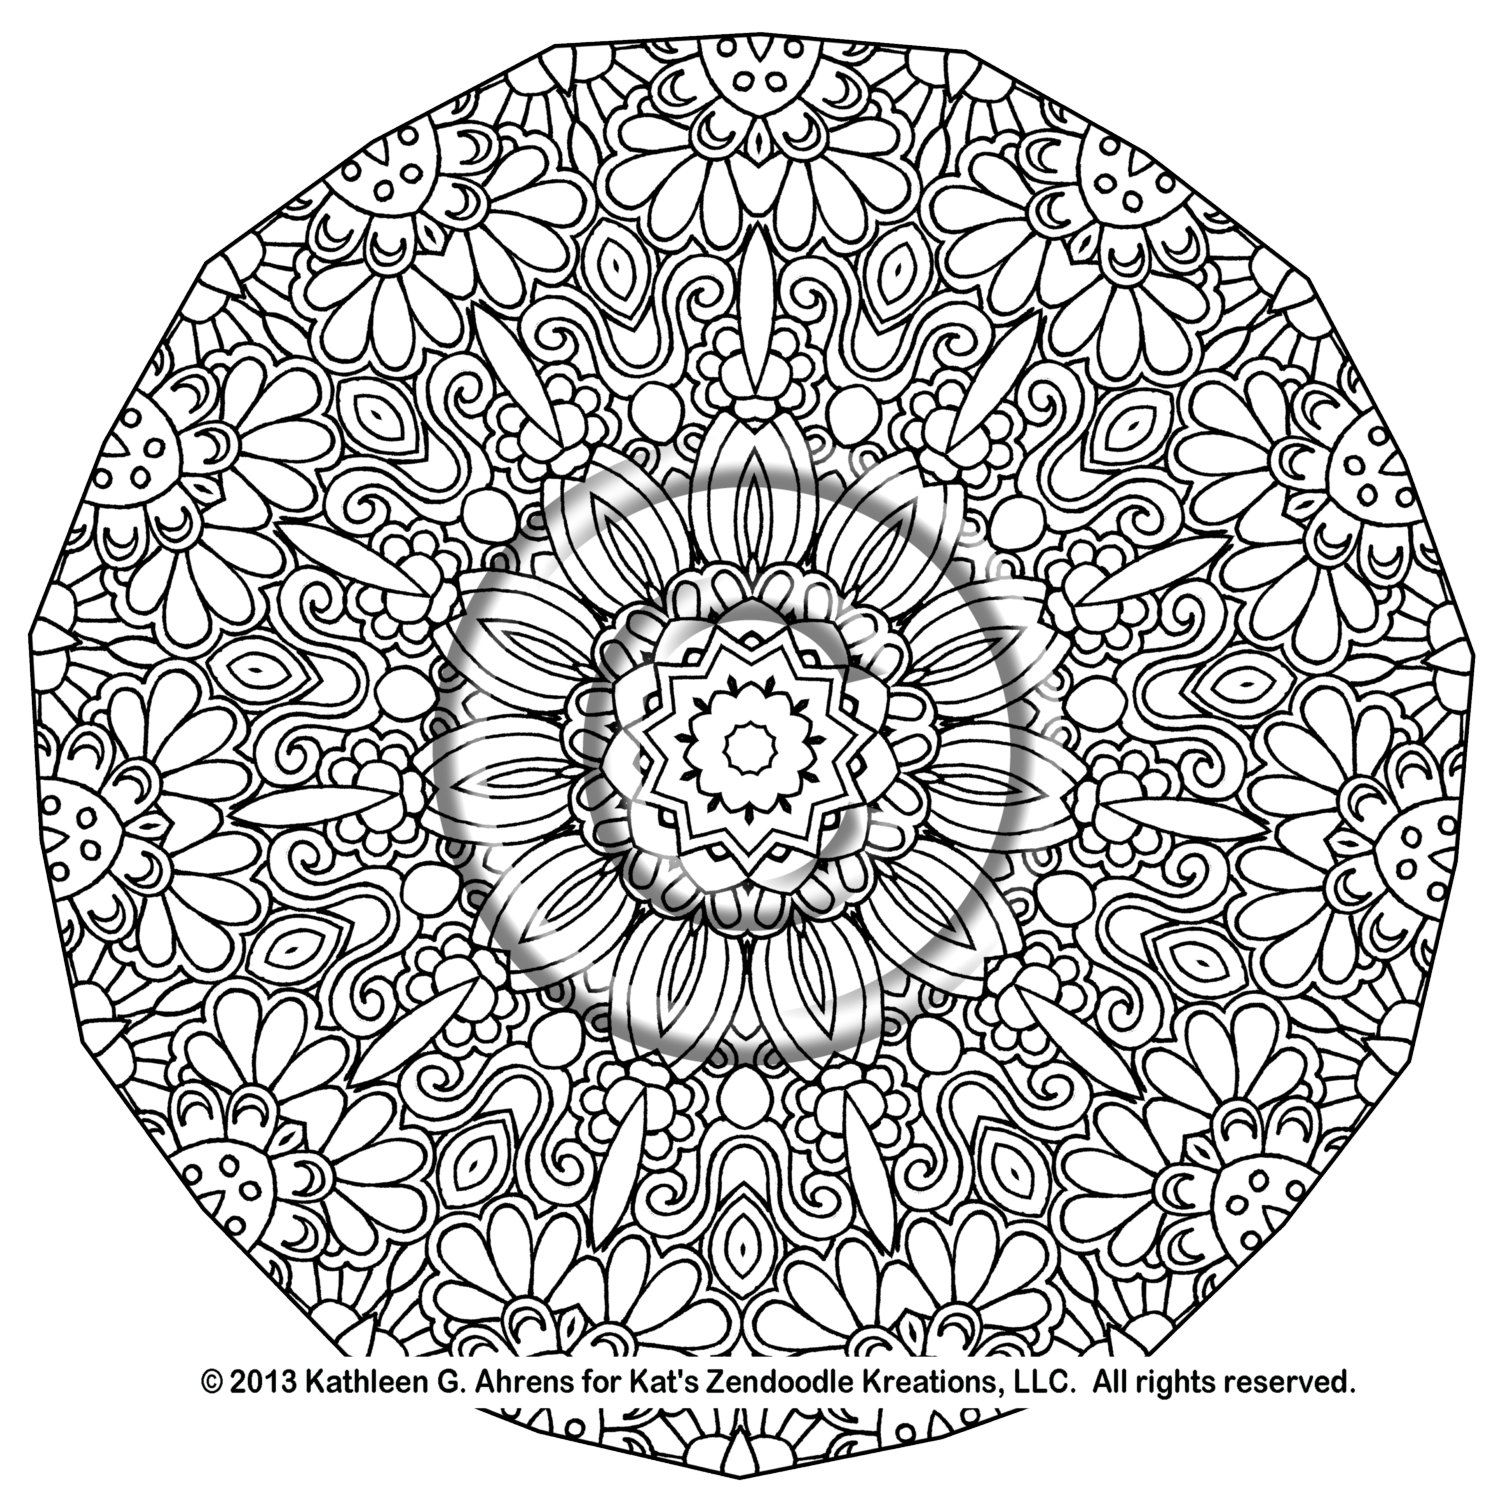 Adult coloring pages free printables mandala - Mandala Coloring Pages Printable Free Www Azembrace Org